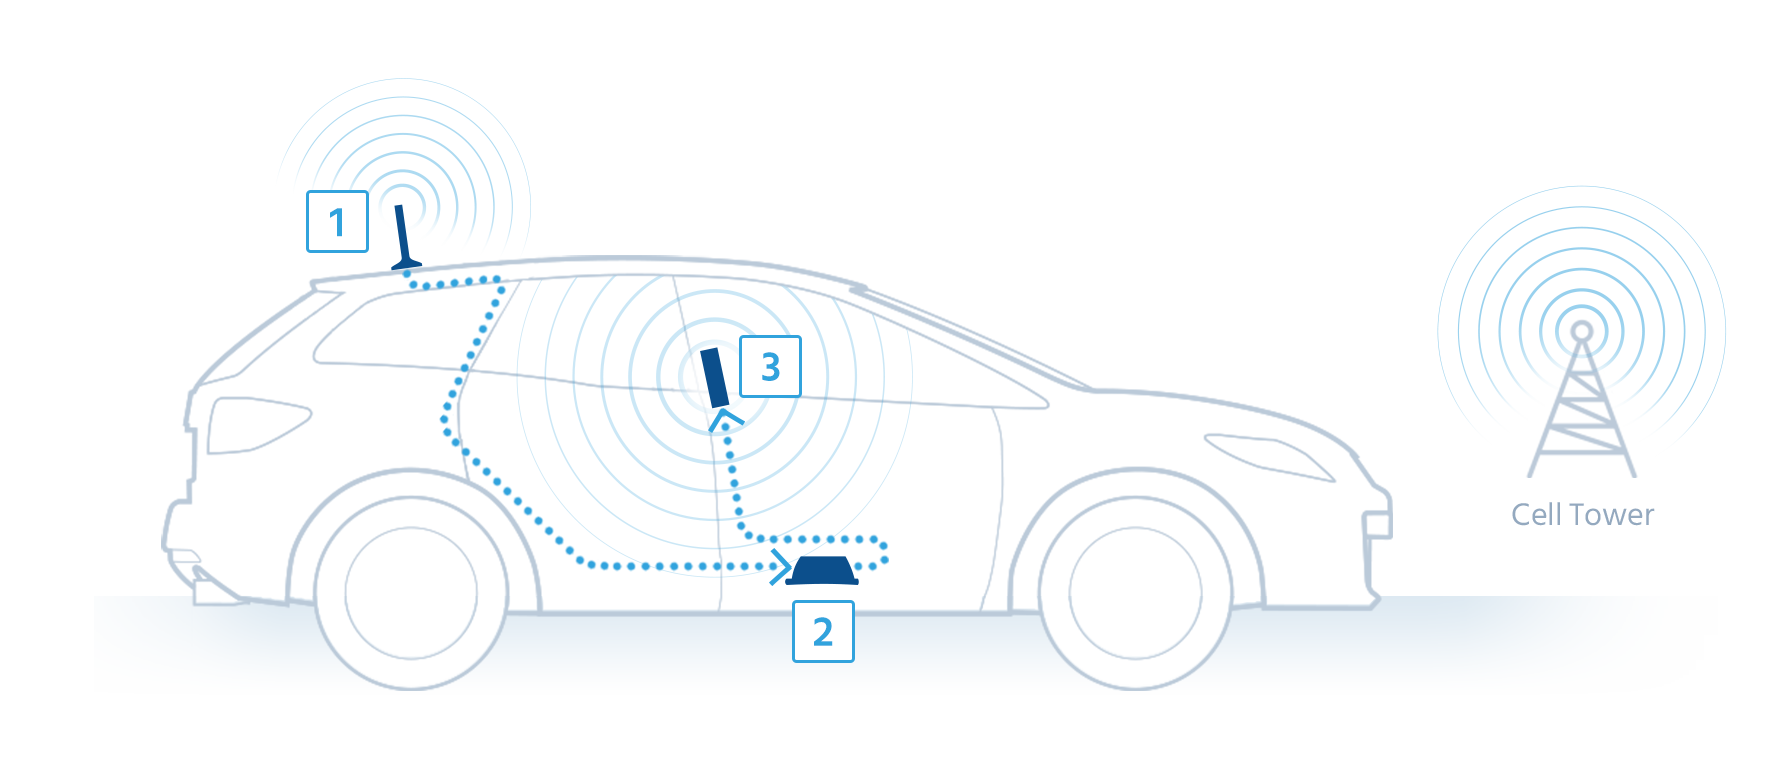 car and vehicle signal booster diagram